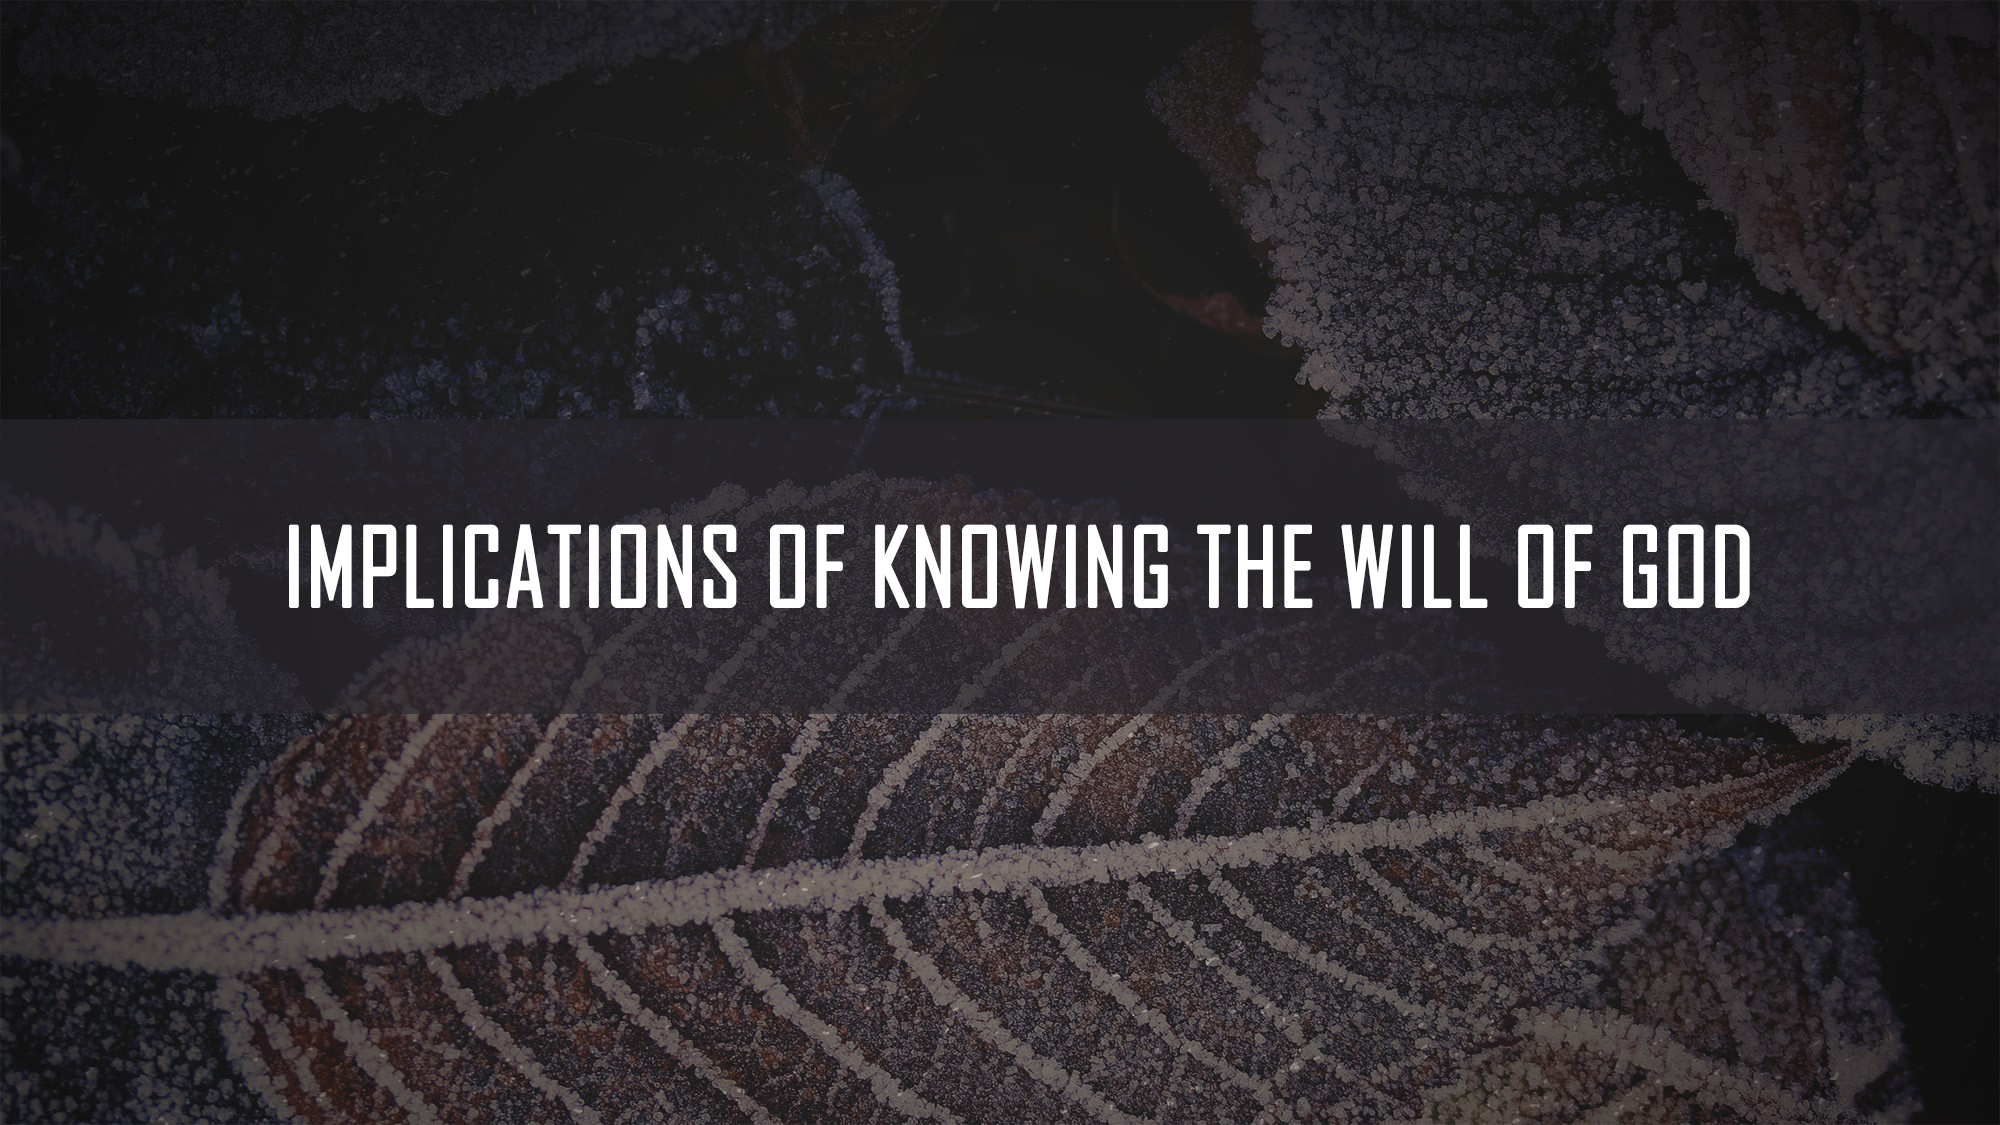 Implications of Knowing the will of God<br/>Jacob K Mathai